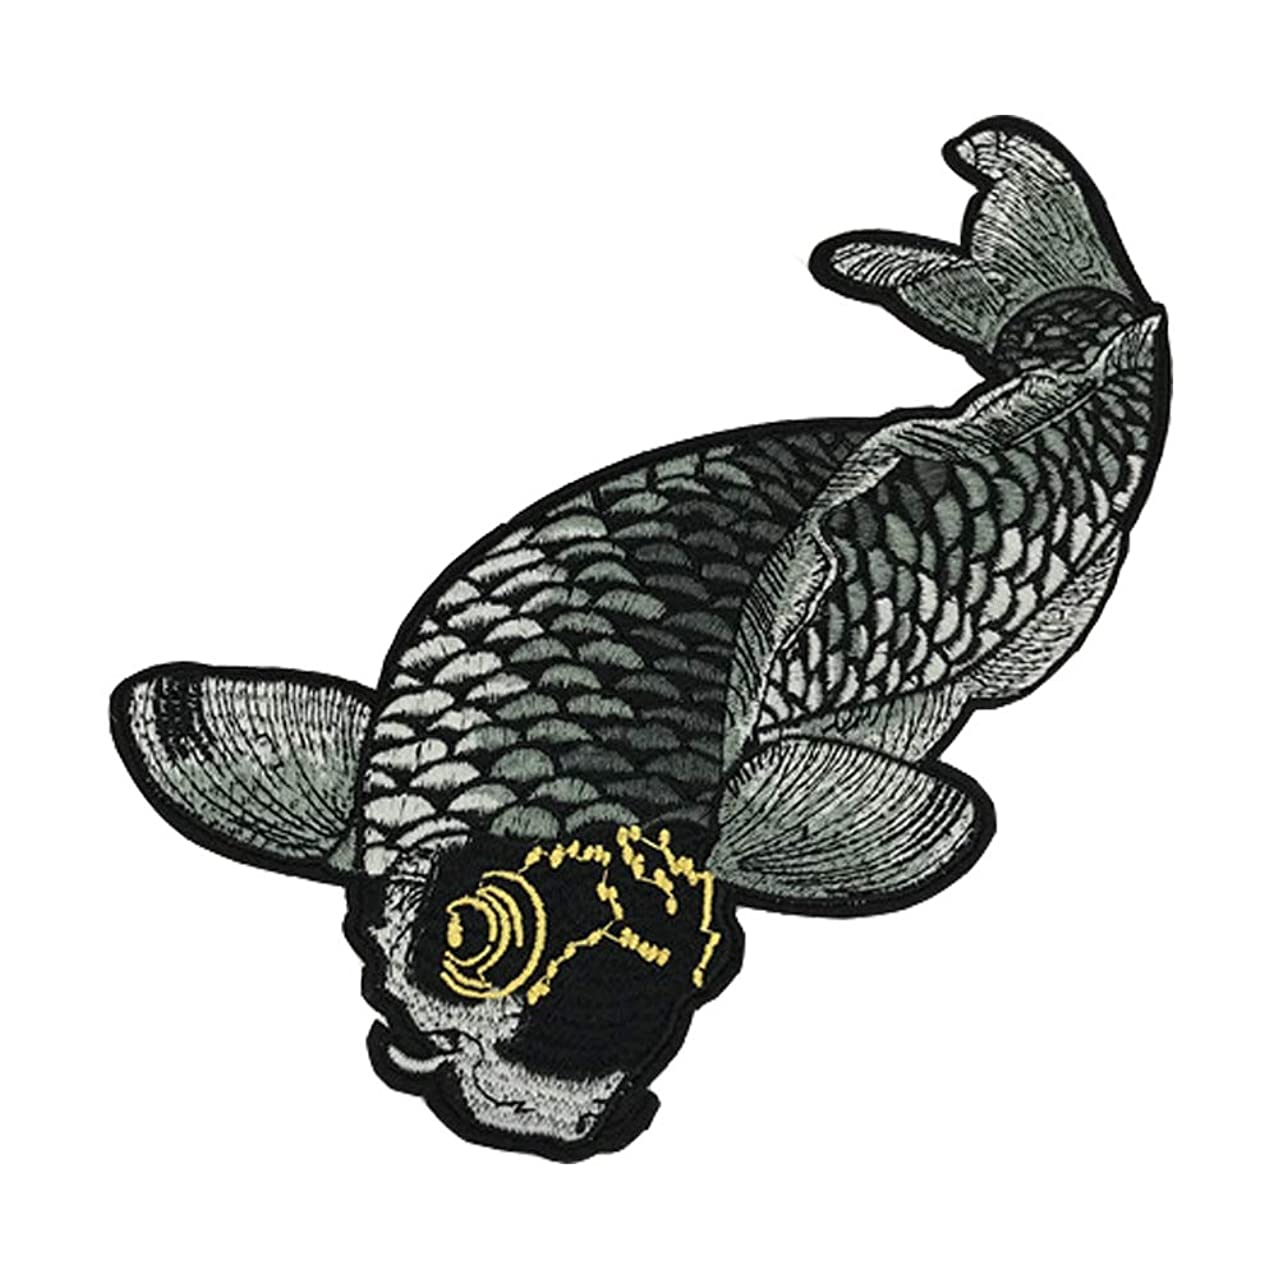 XUNHUI Black Carp Fish Embroidered Patches for Clothes Iron on Garment Applique DIY Accessory Animal Big Fish Patch 1 Piece